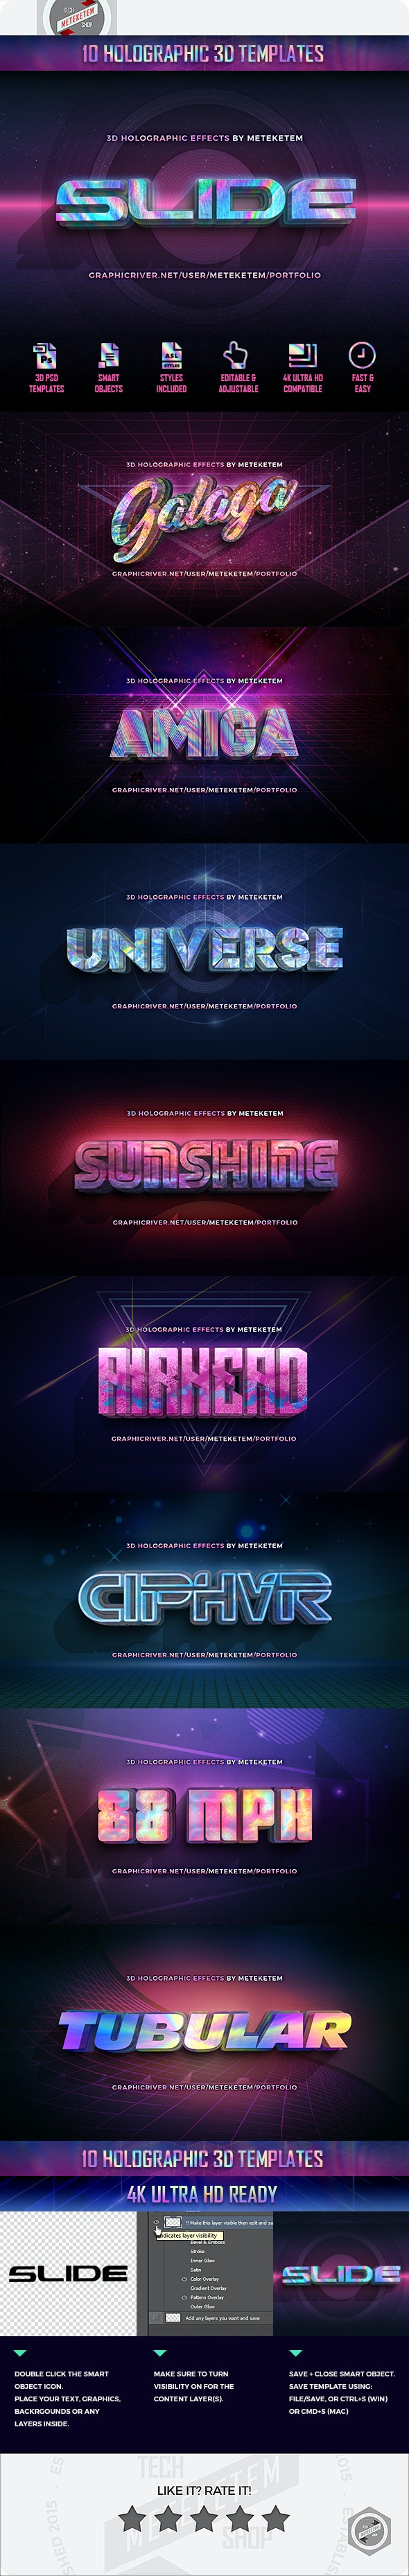 3D Holographic Text Effects - Text Effects Actions